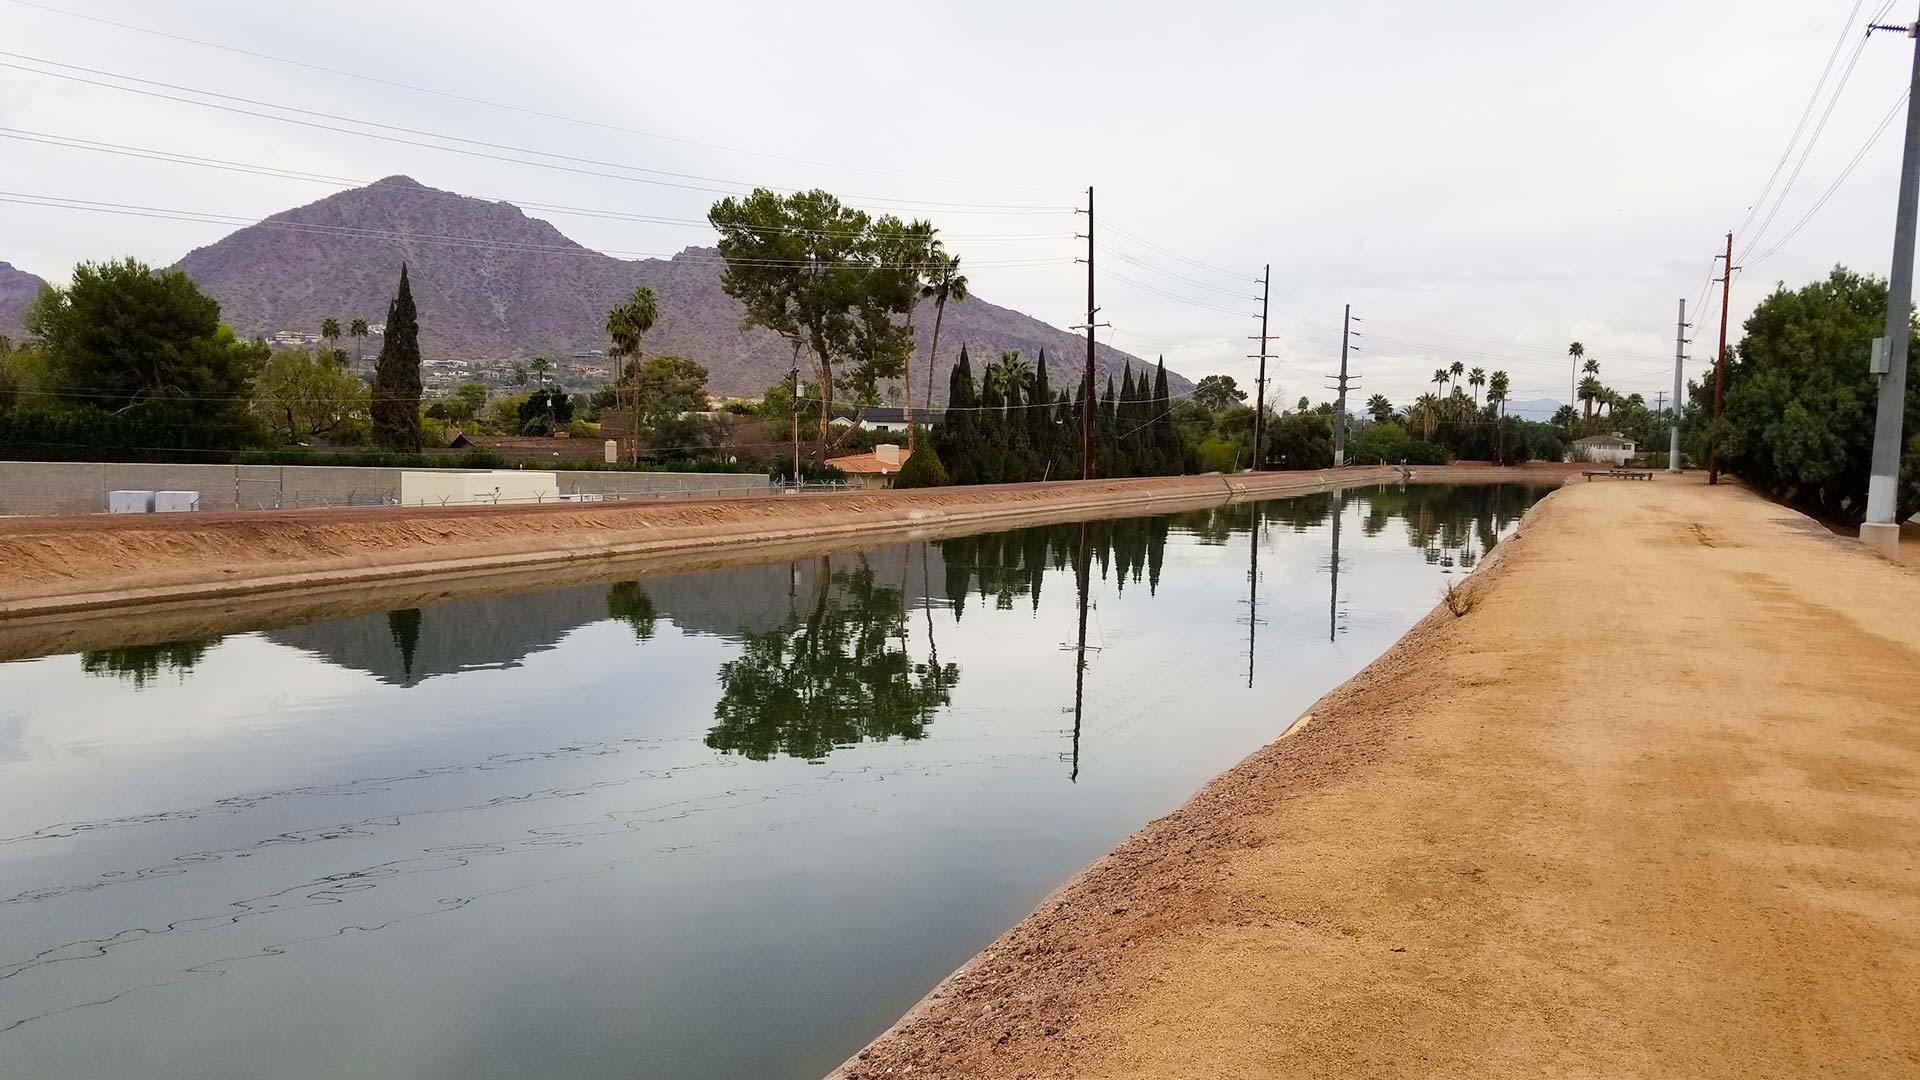 View northeast from Arizona Falls along the Arizona Canal toward Camelback Mountain, in Phoenix.